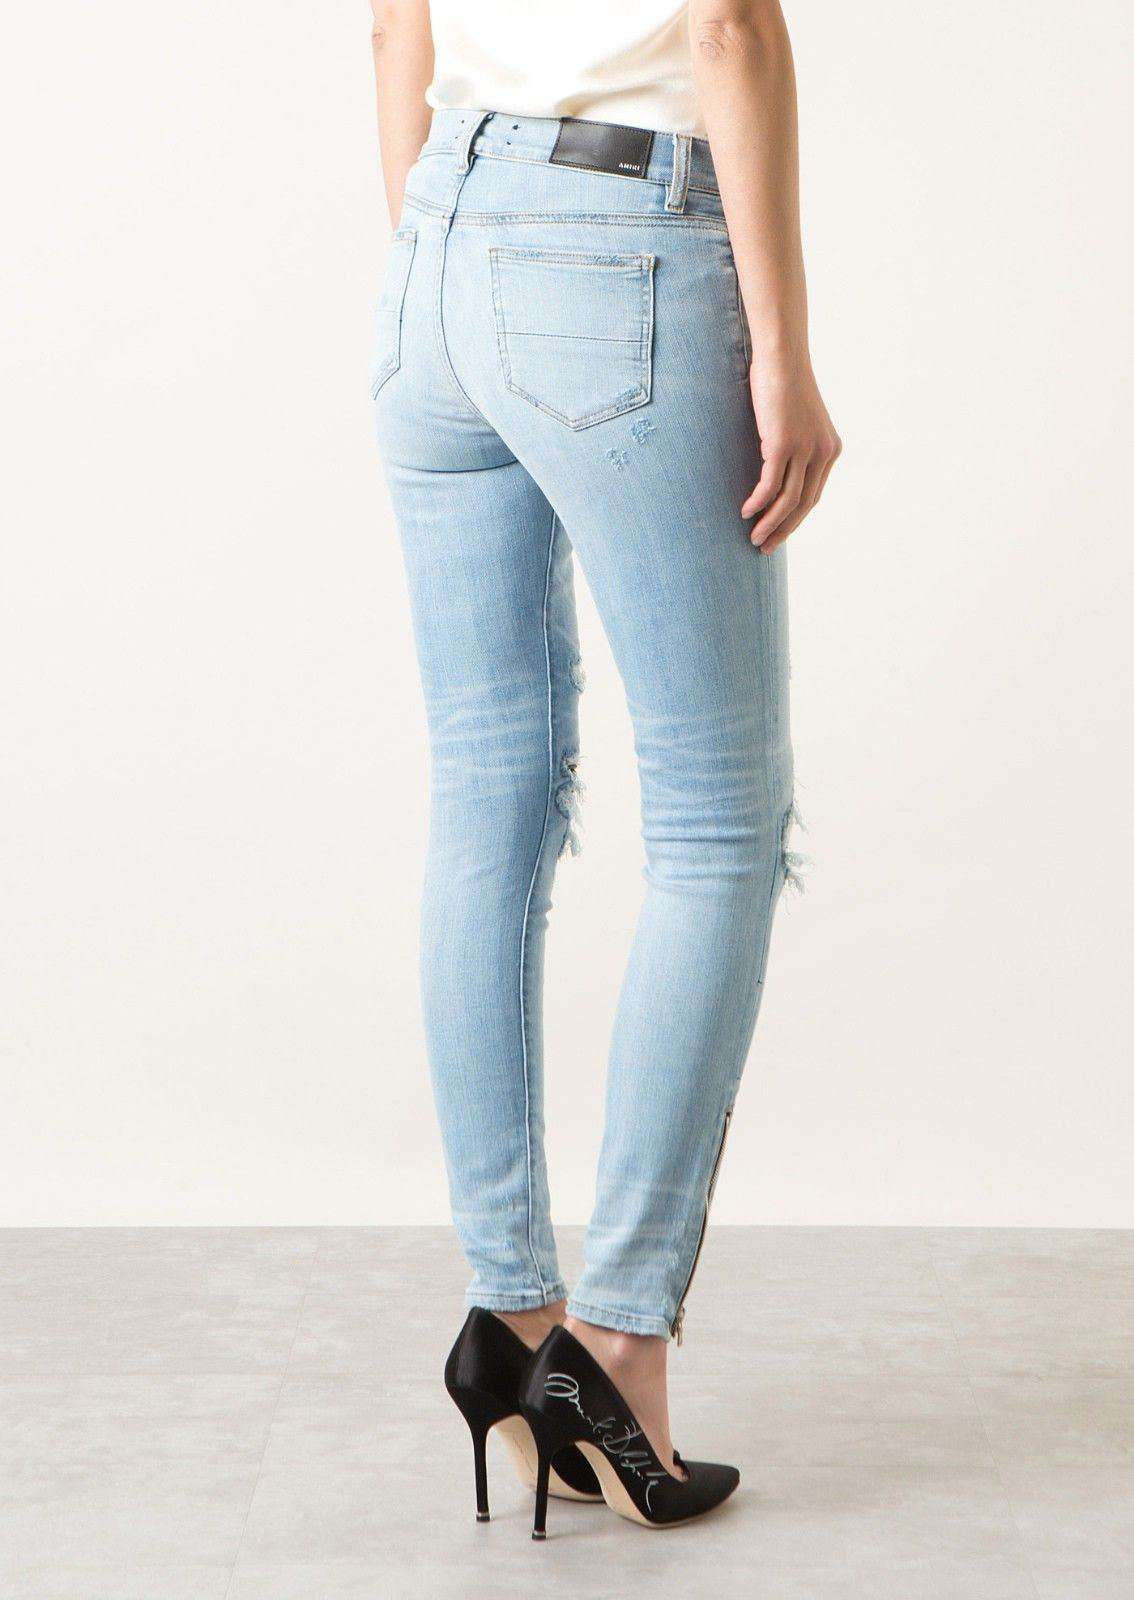 AMIRI MX1 LEATHER PATCH SKINNY JEANS IN LIGHT WASH W24 UK 6